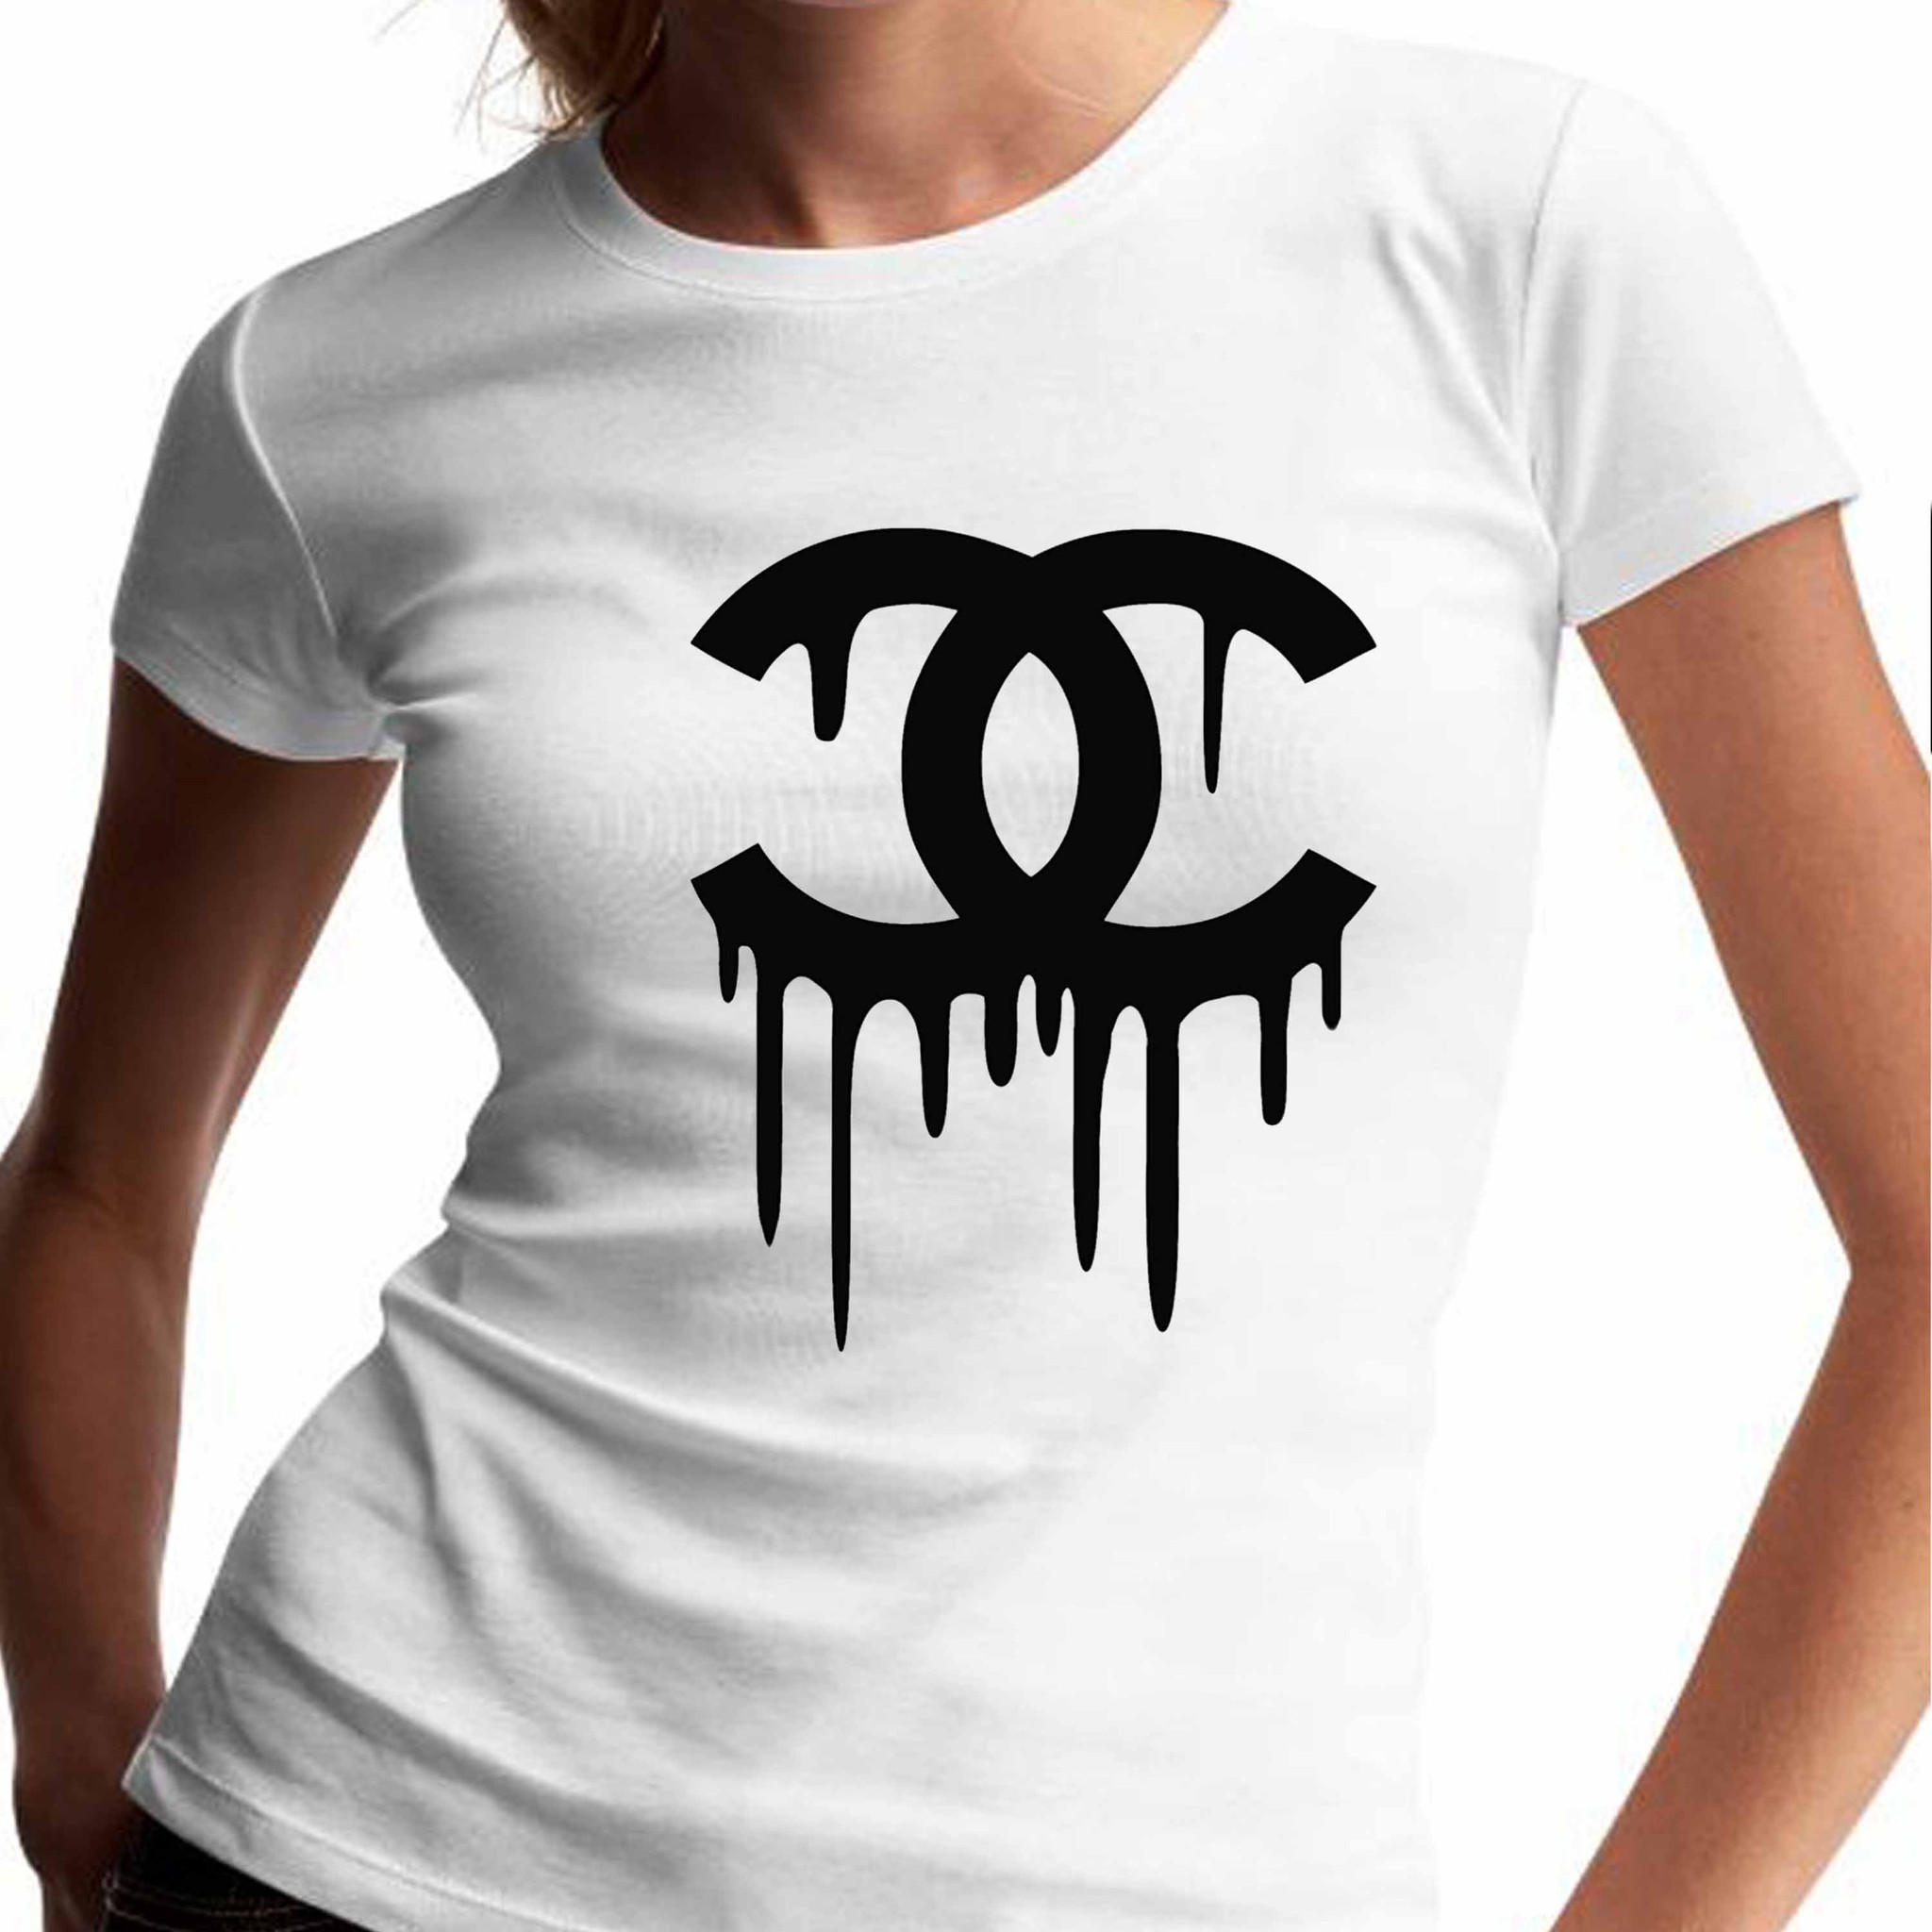 Celfie Selfie Vogue Coco Chanel Feline R from shoptshirt